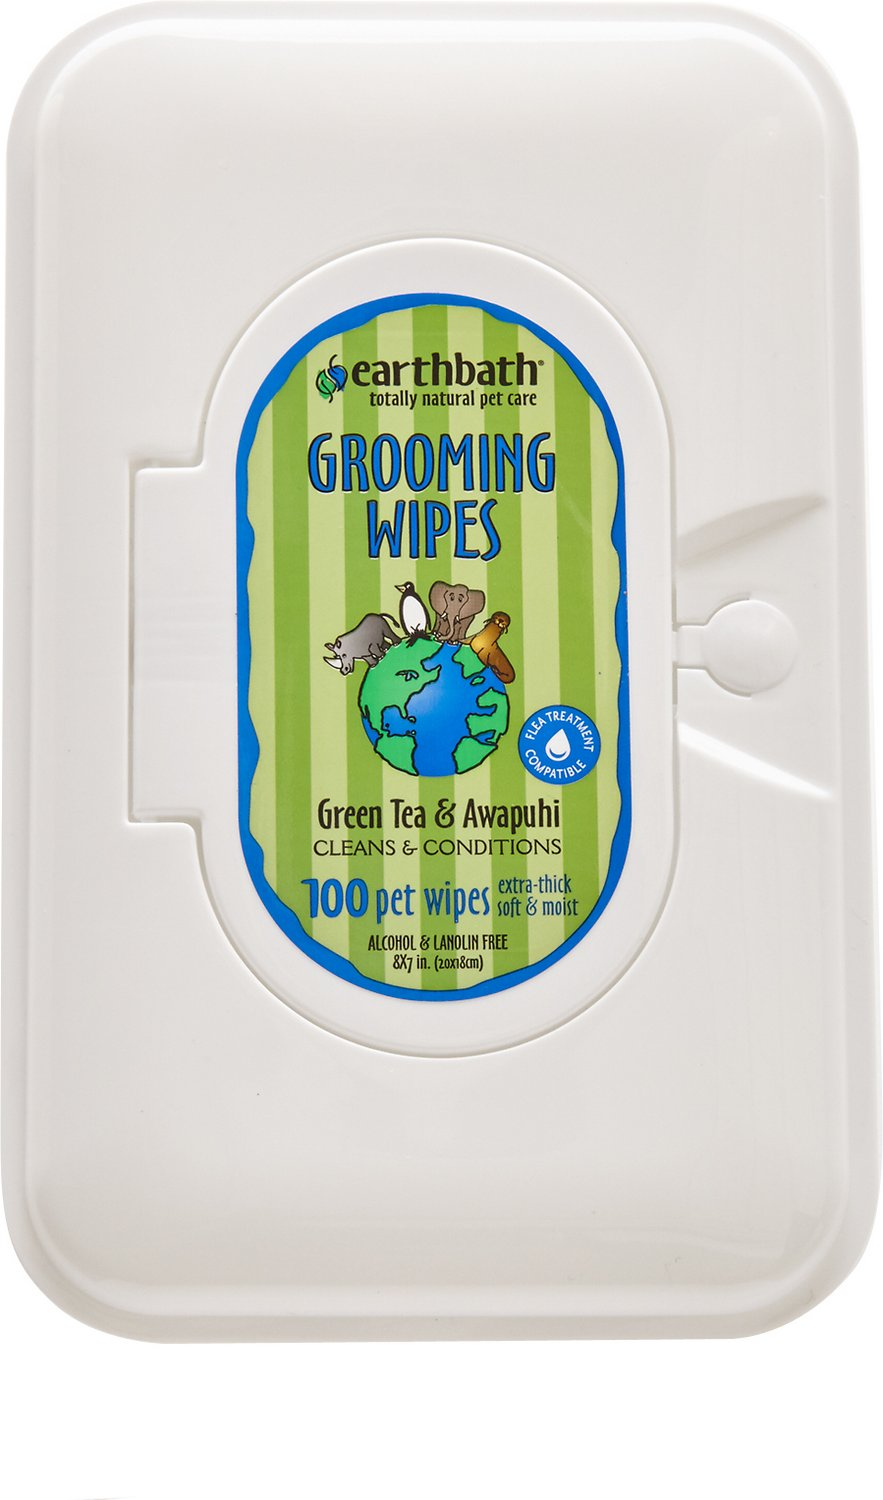 Earthbath Green Tea & Awapuhi Grooming Wipes for Dogs & Cats, 100 count